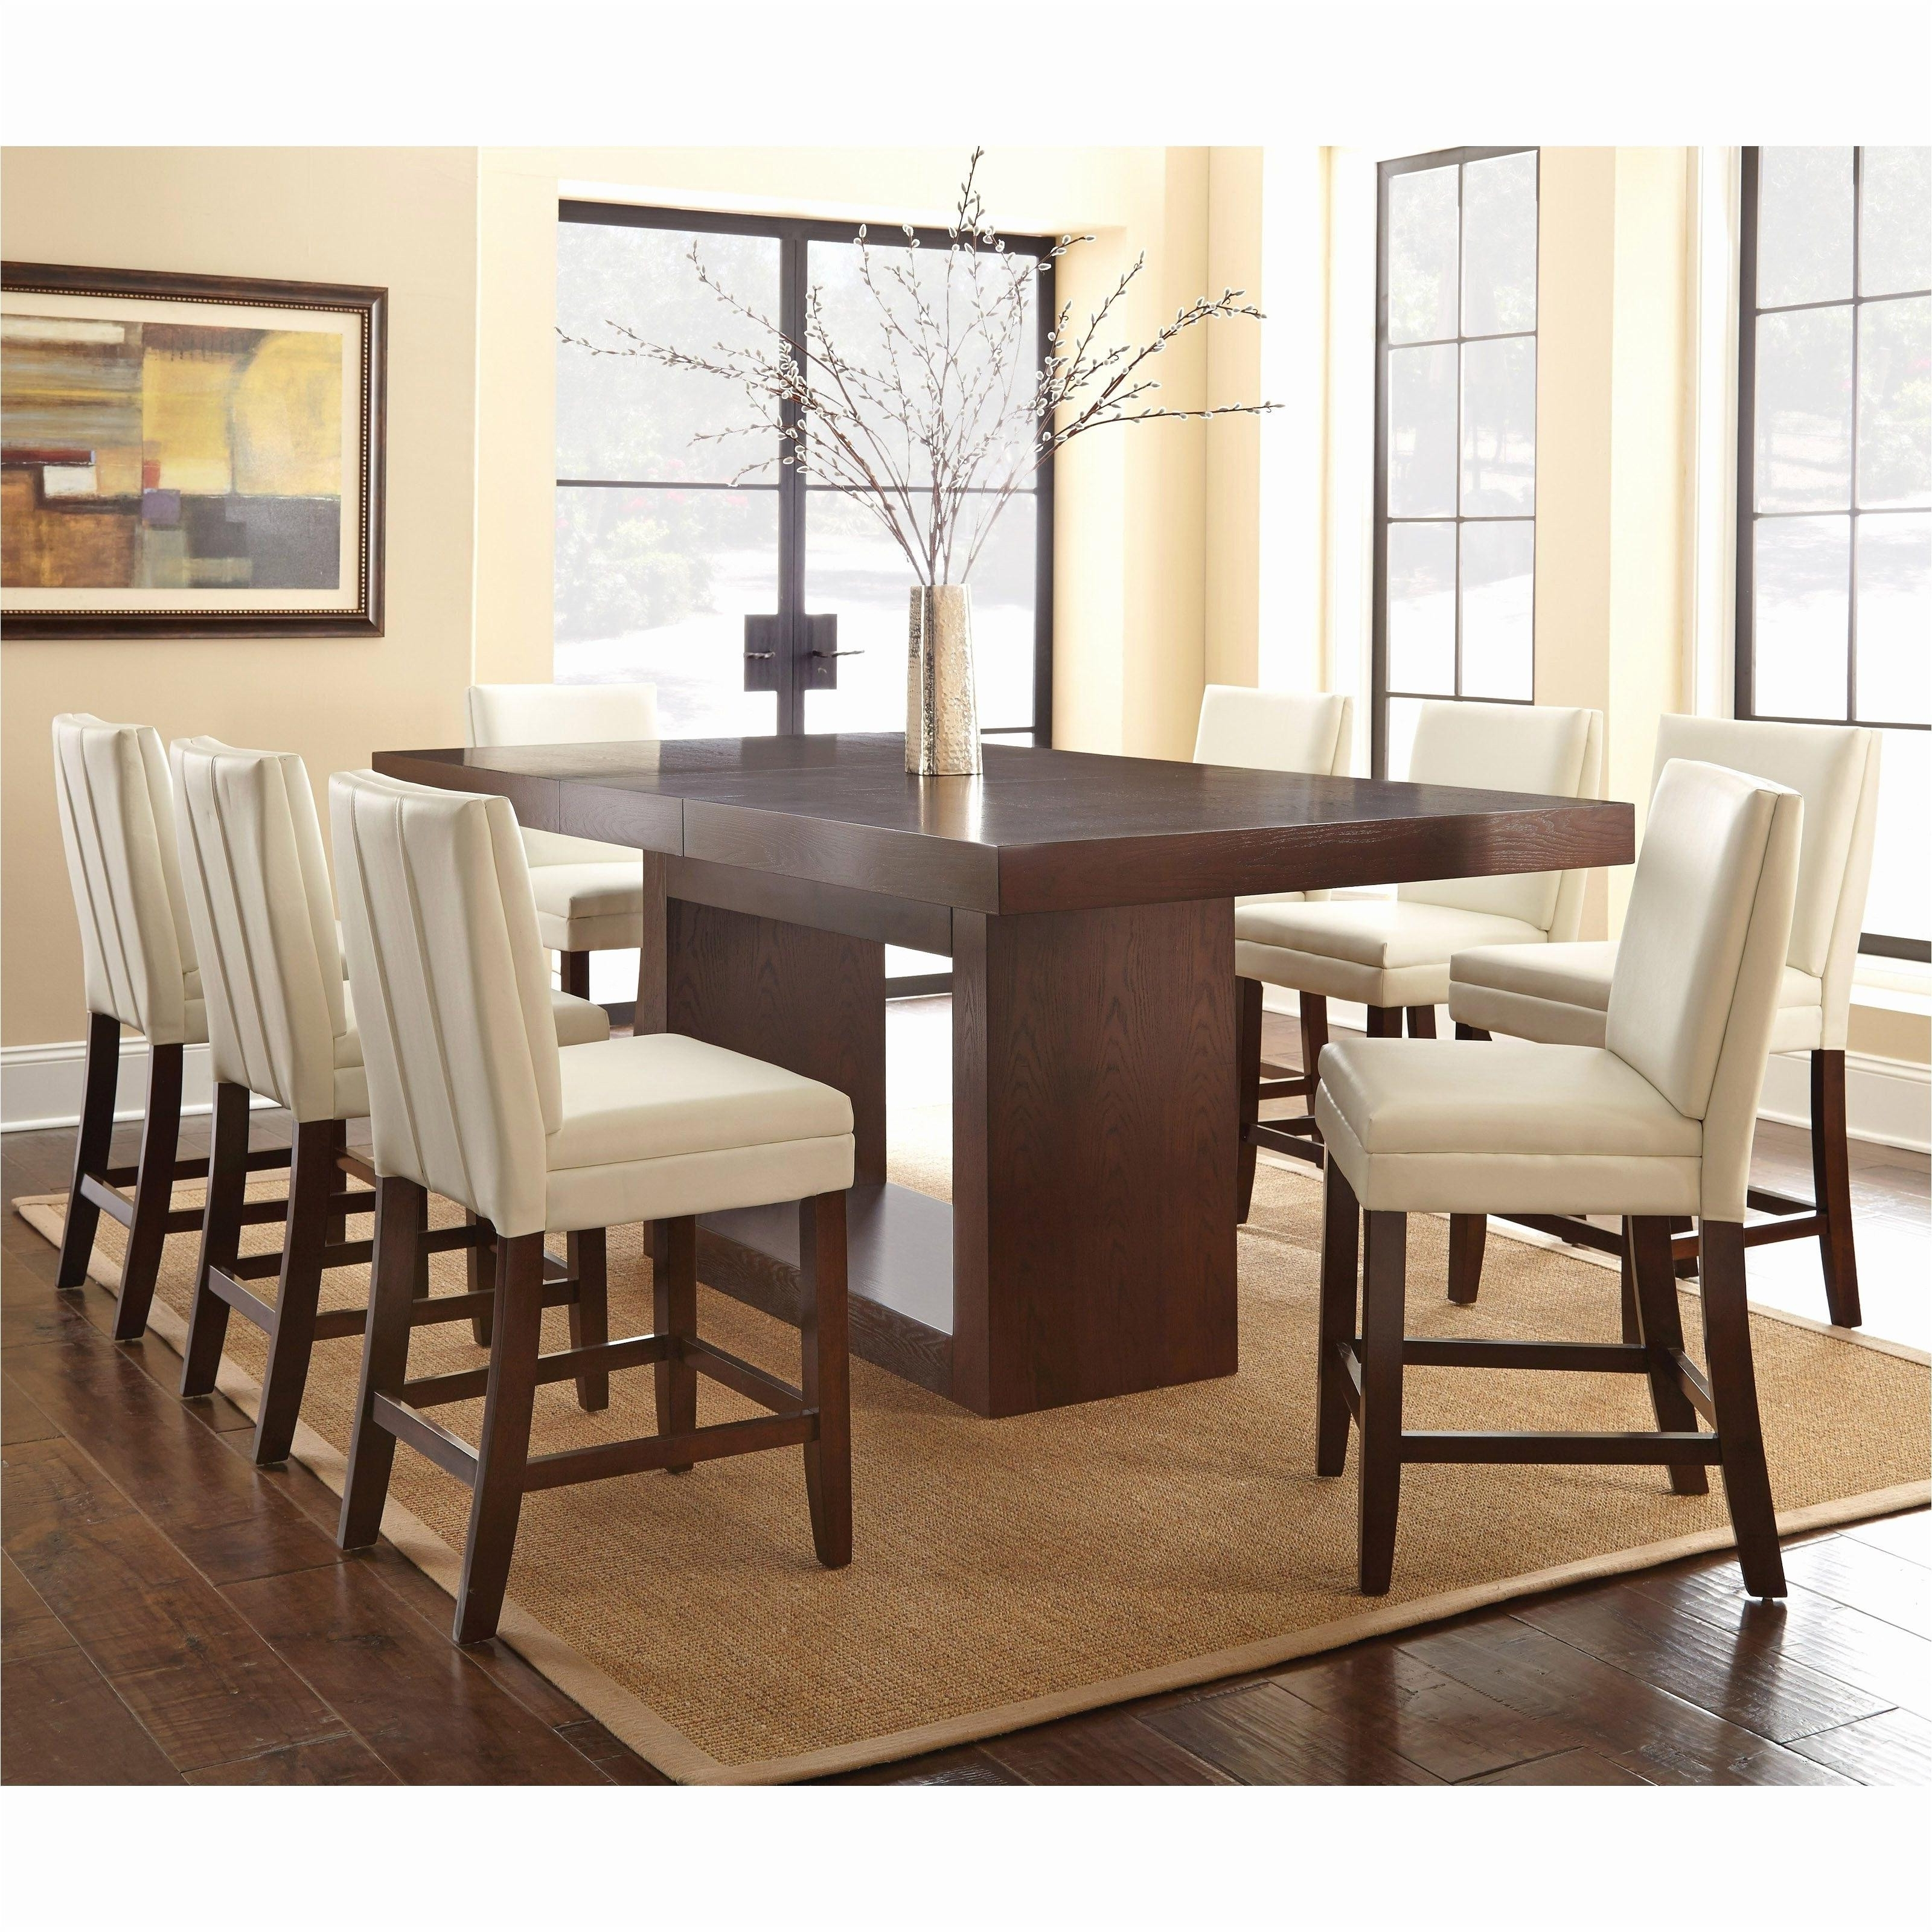 Famous Modern Dining Room Tables In Narrow Dining Tables (View 4 of 25)